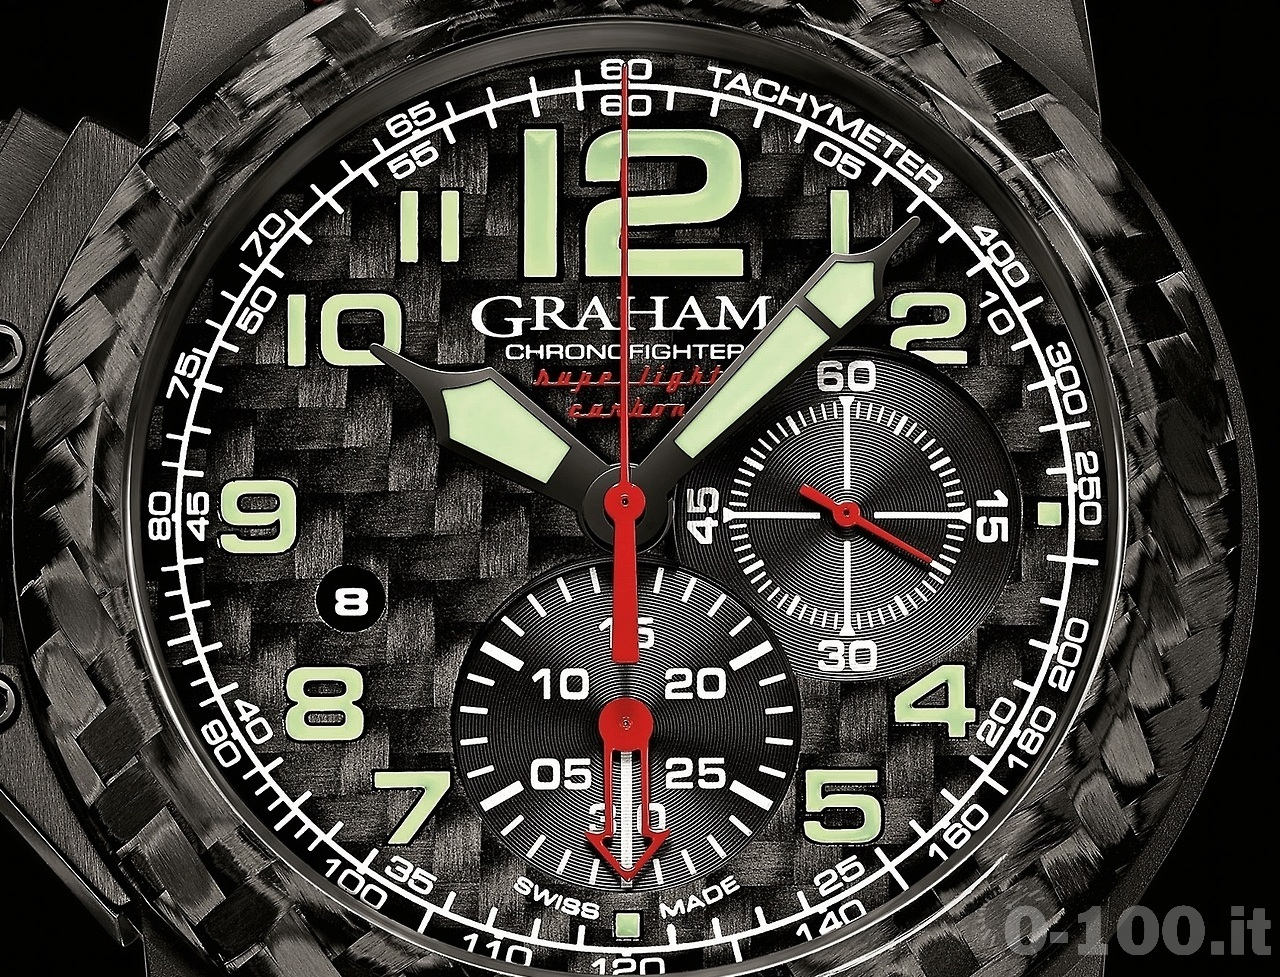 GRAHAM ? Chronofighter Oversize Superlight Carbon